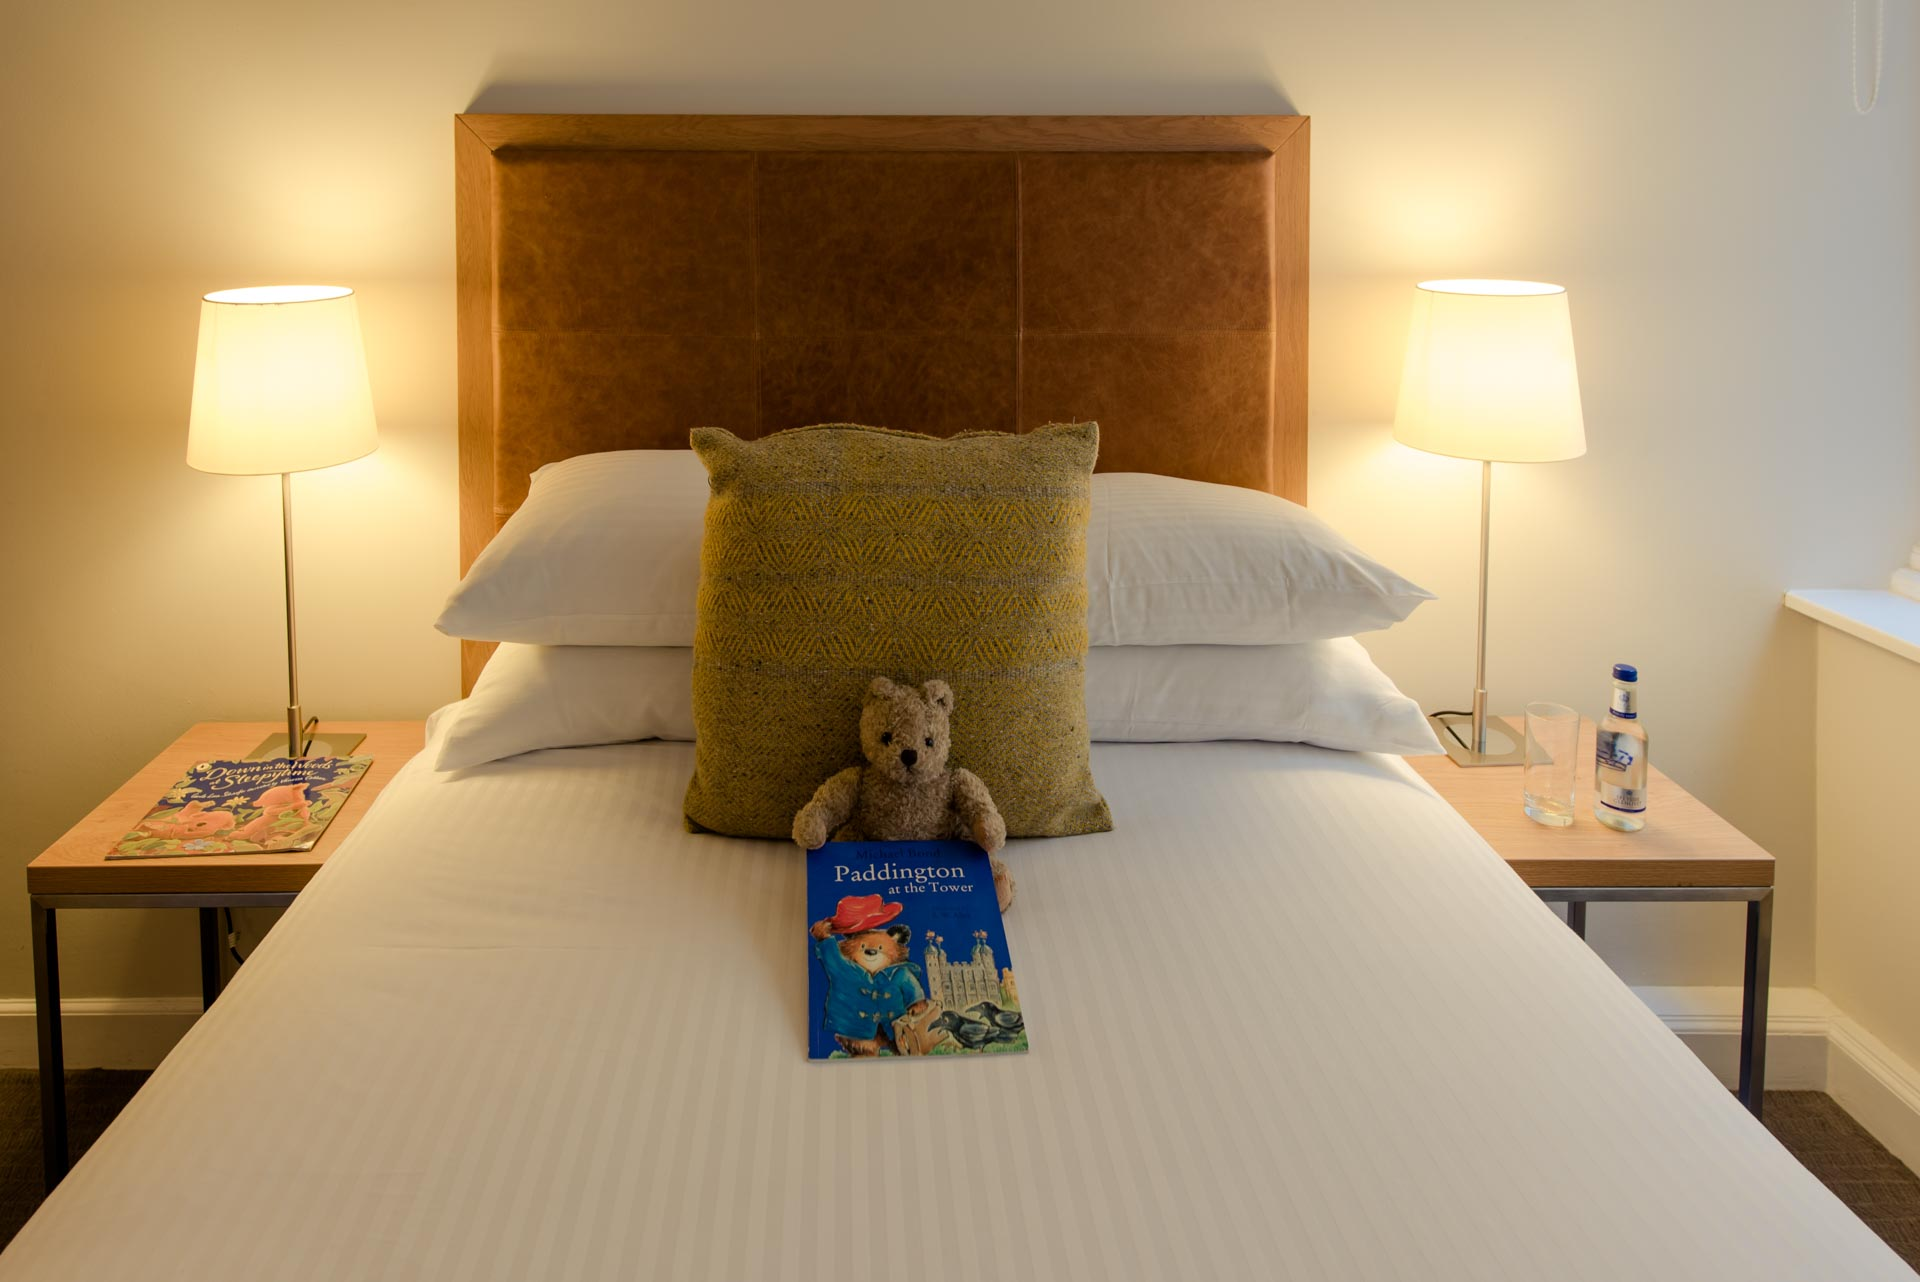 Children's book and teddy PREMIER SUITES PLUS Glasgow Bath Street